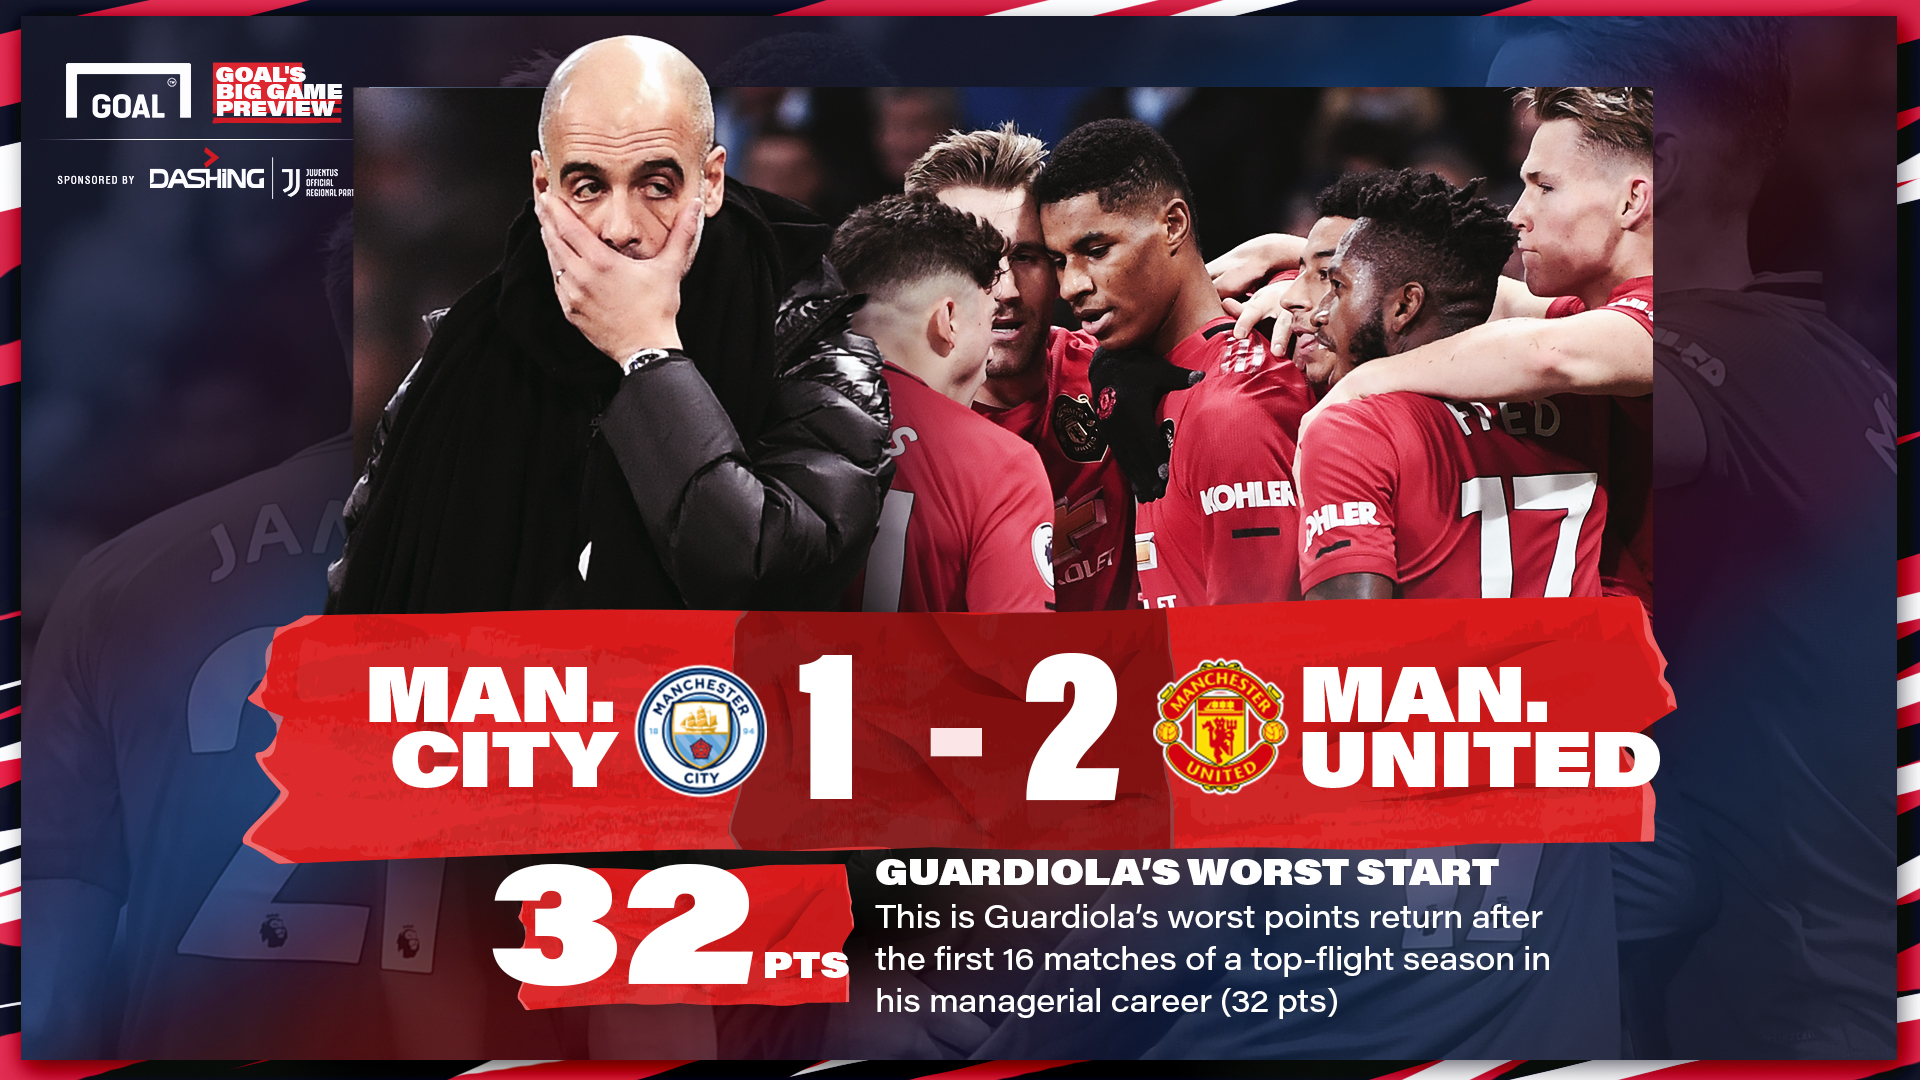 Dashing GFX Manchester Derby